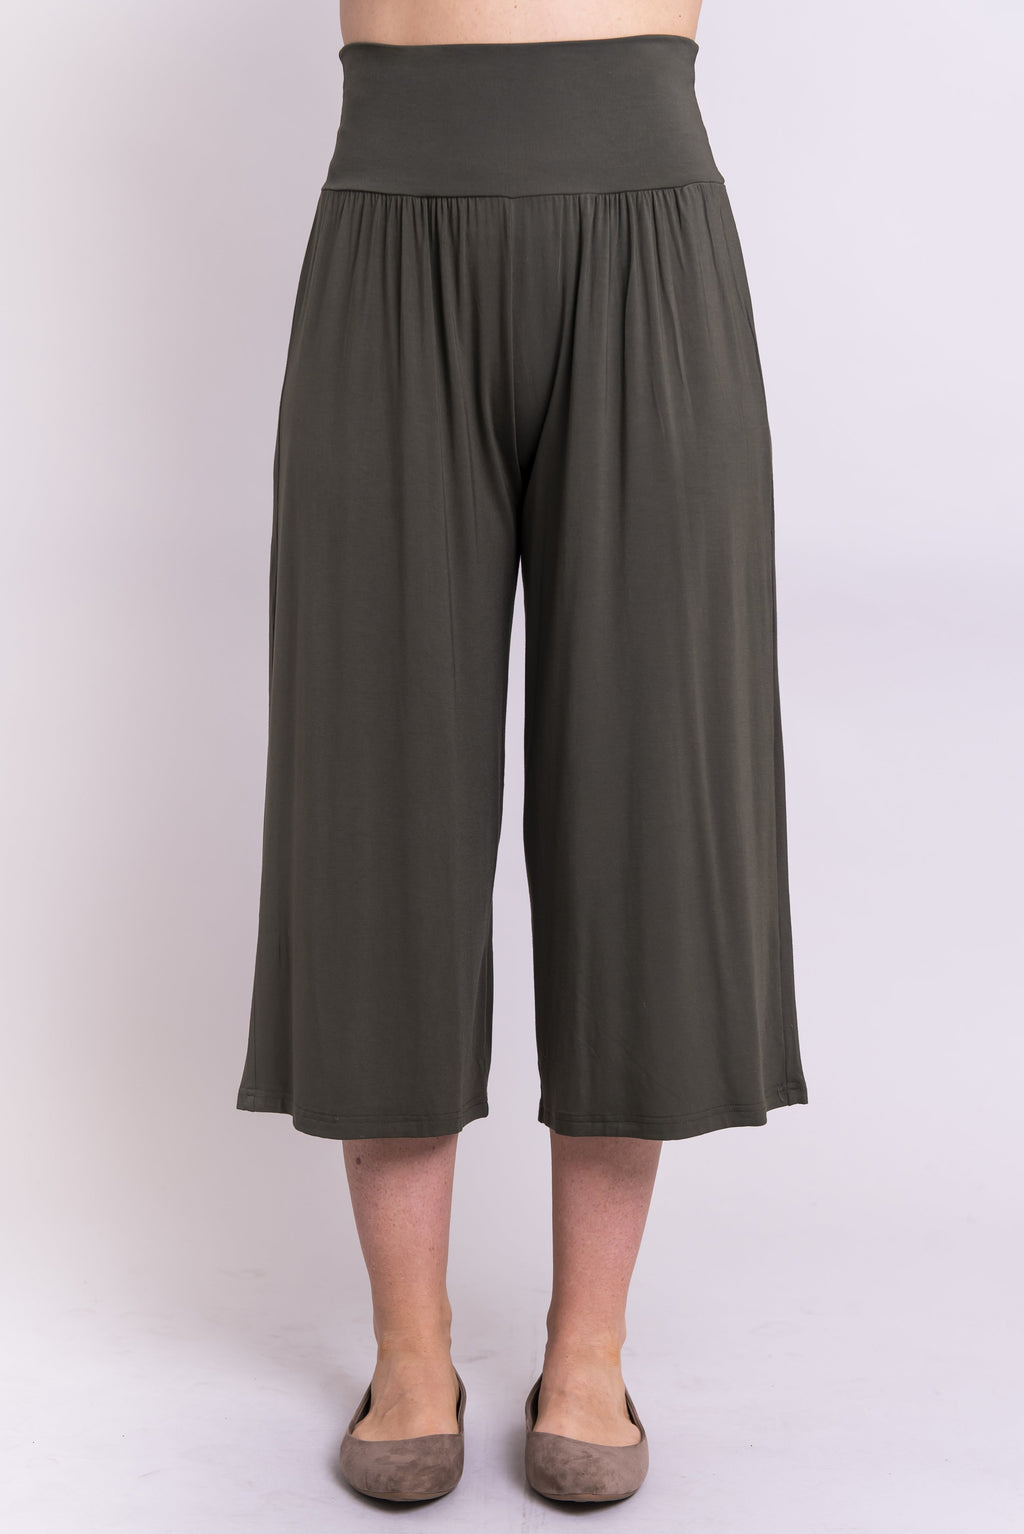 Gaylene Capri, Khaki,Bamboo - Blue Sky Clothing Co